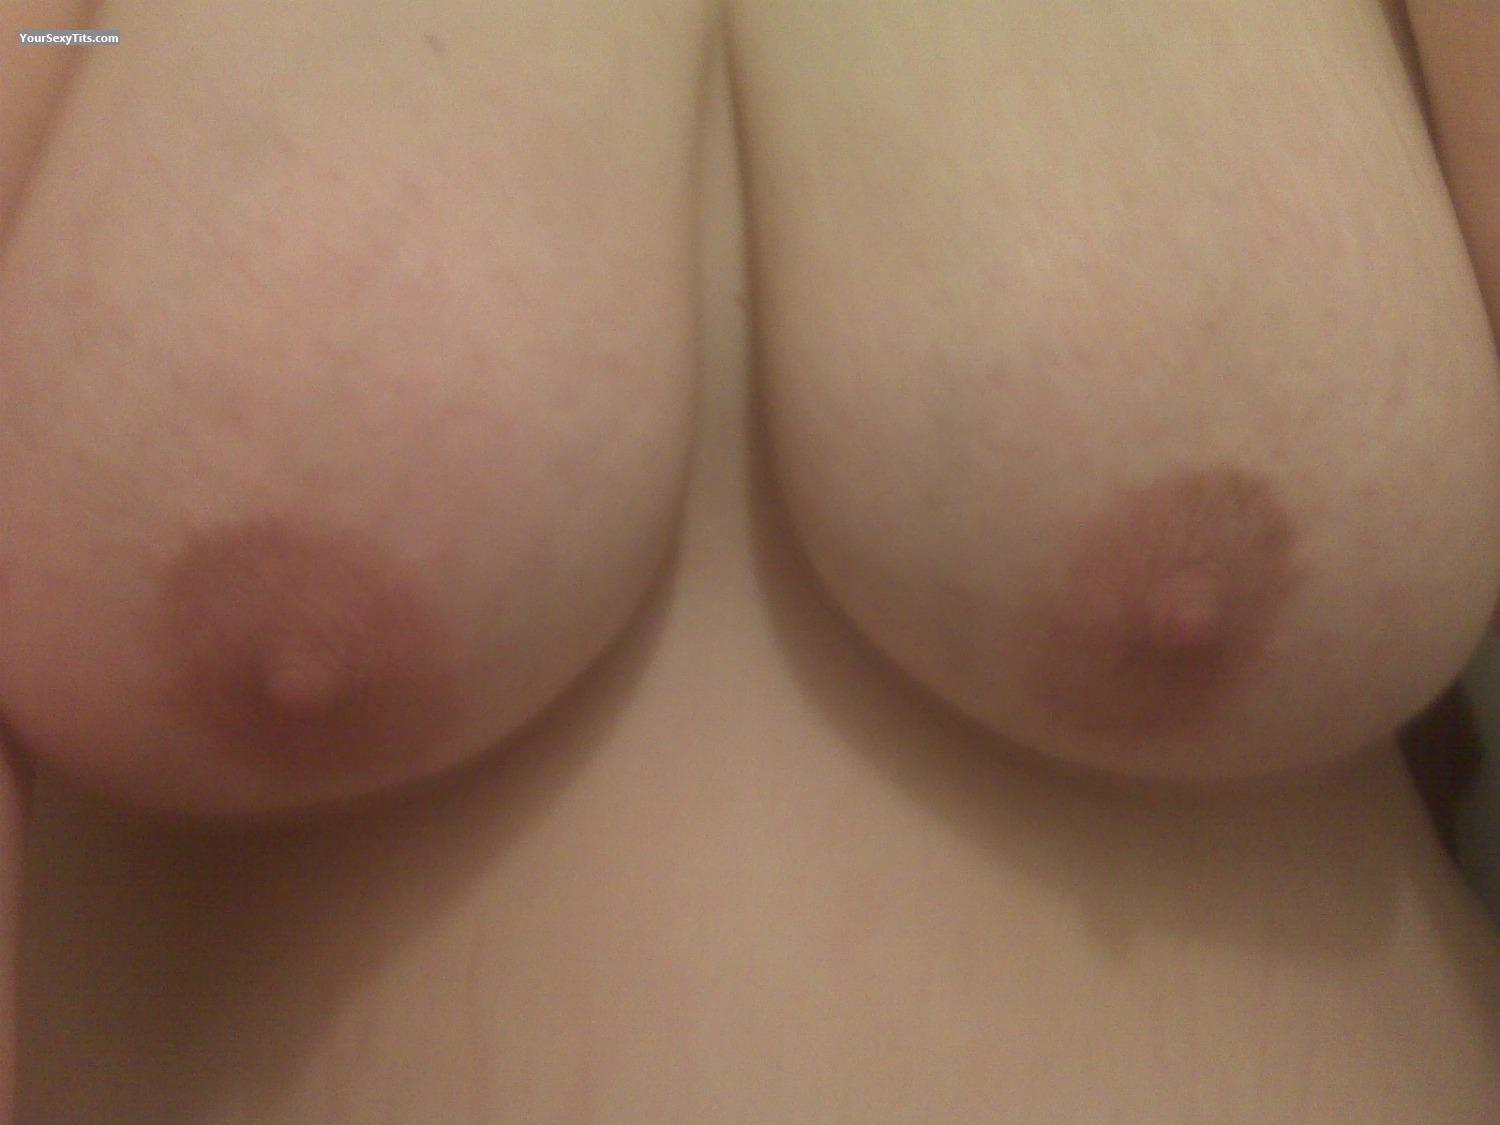 Tit Flash: My Very Big Tits (Selfie) - Naughty Beth from United States